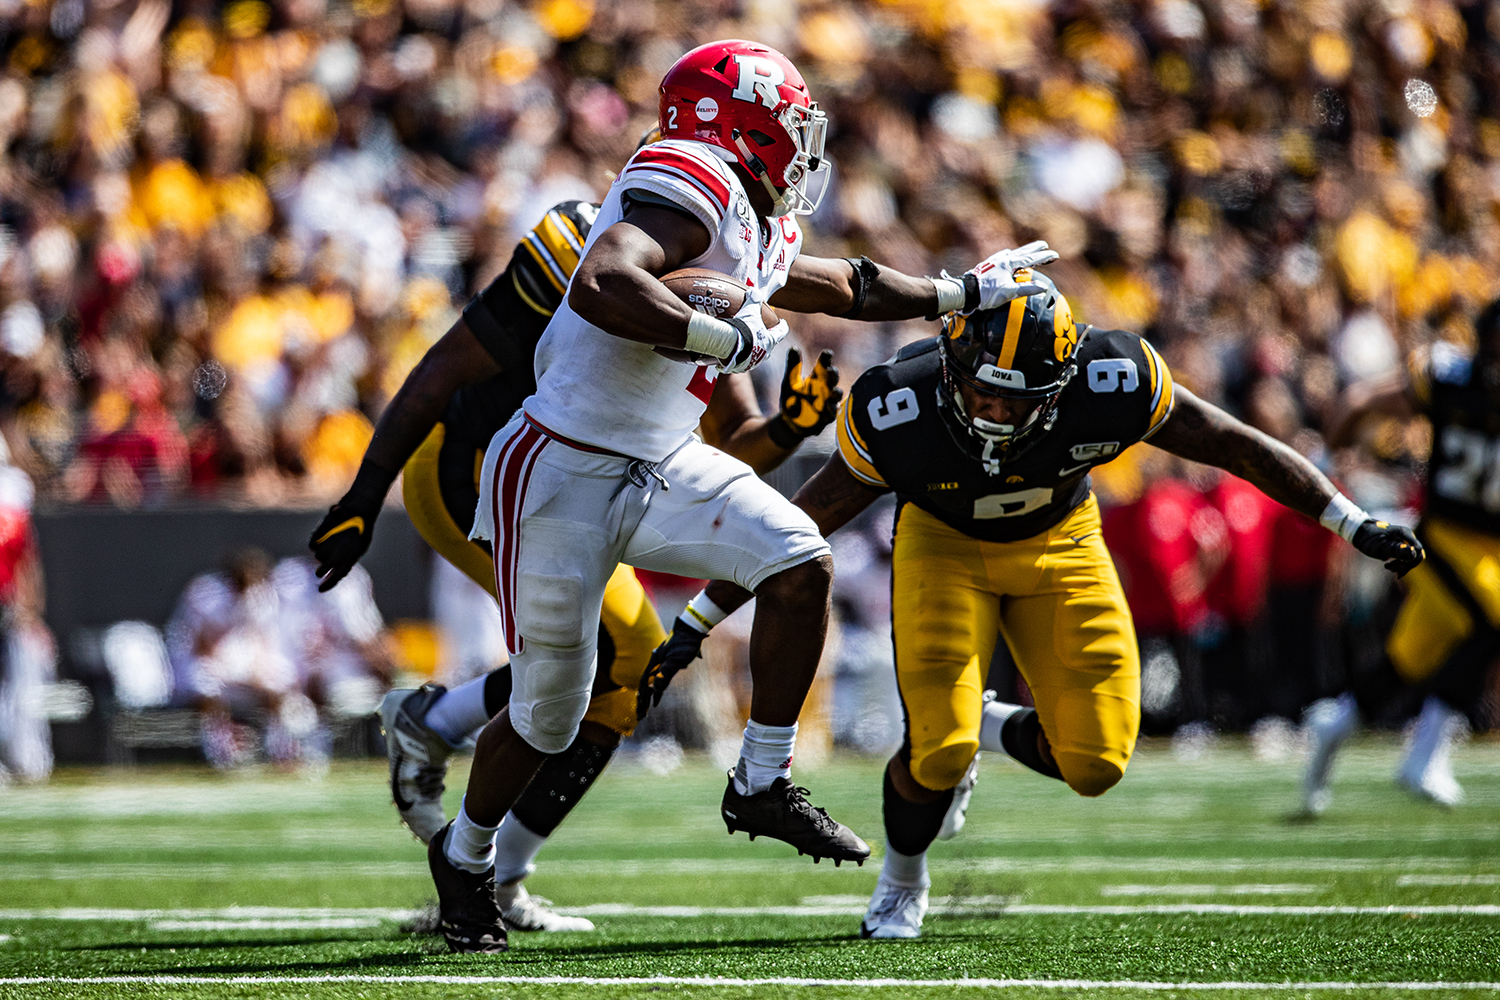 Iowa defensive back Geno Stone goes for a tackle during a football game between Iowa and Rutgers at Kinnick Stadium on Saturday, September 7, 2019. The Hawkeyes defeated the Scarlet Knights, 30-0.